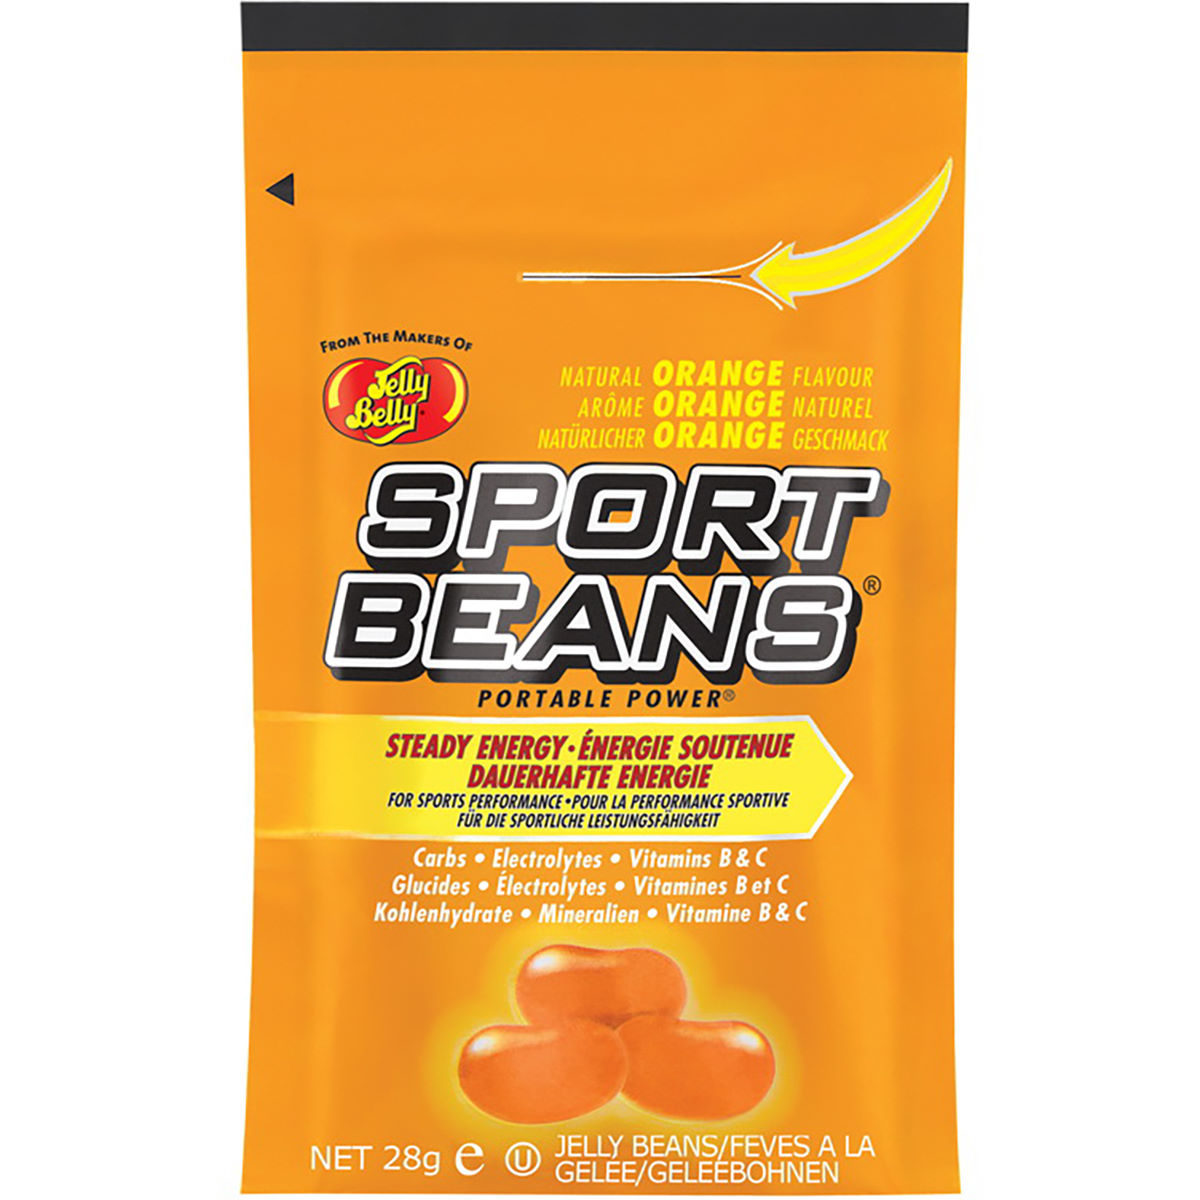 Image of Bonbons Jelly Belly Sports (24 x 28 g) - 24g 41504 - 21-30 Orange